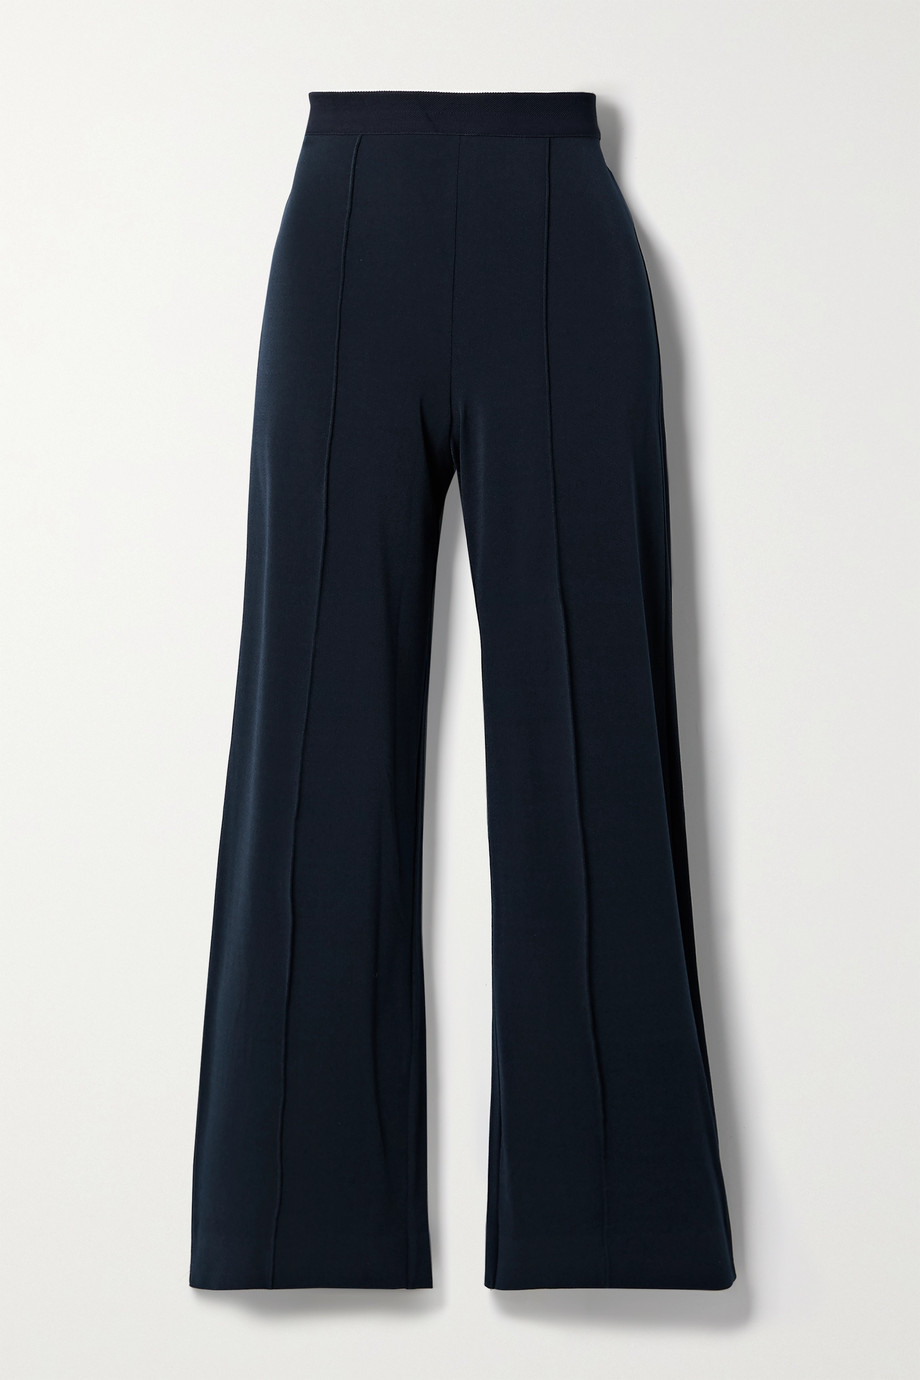 BY MALENE BIRGER Miela stretch-ponte straight-leg pants